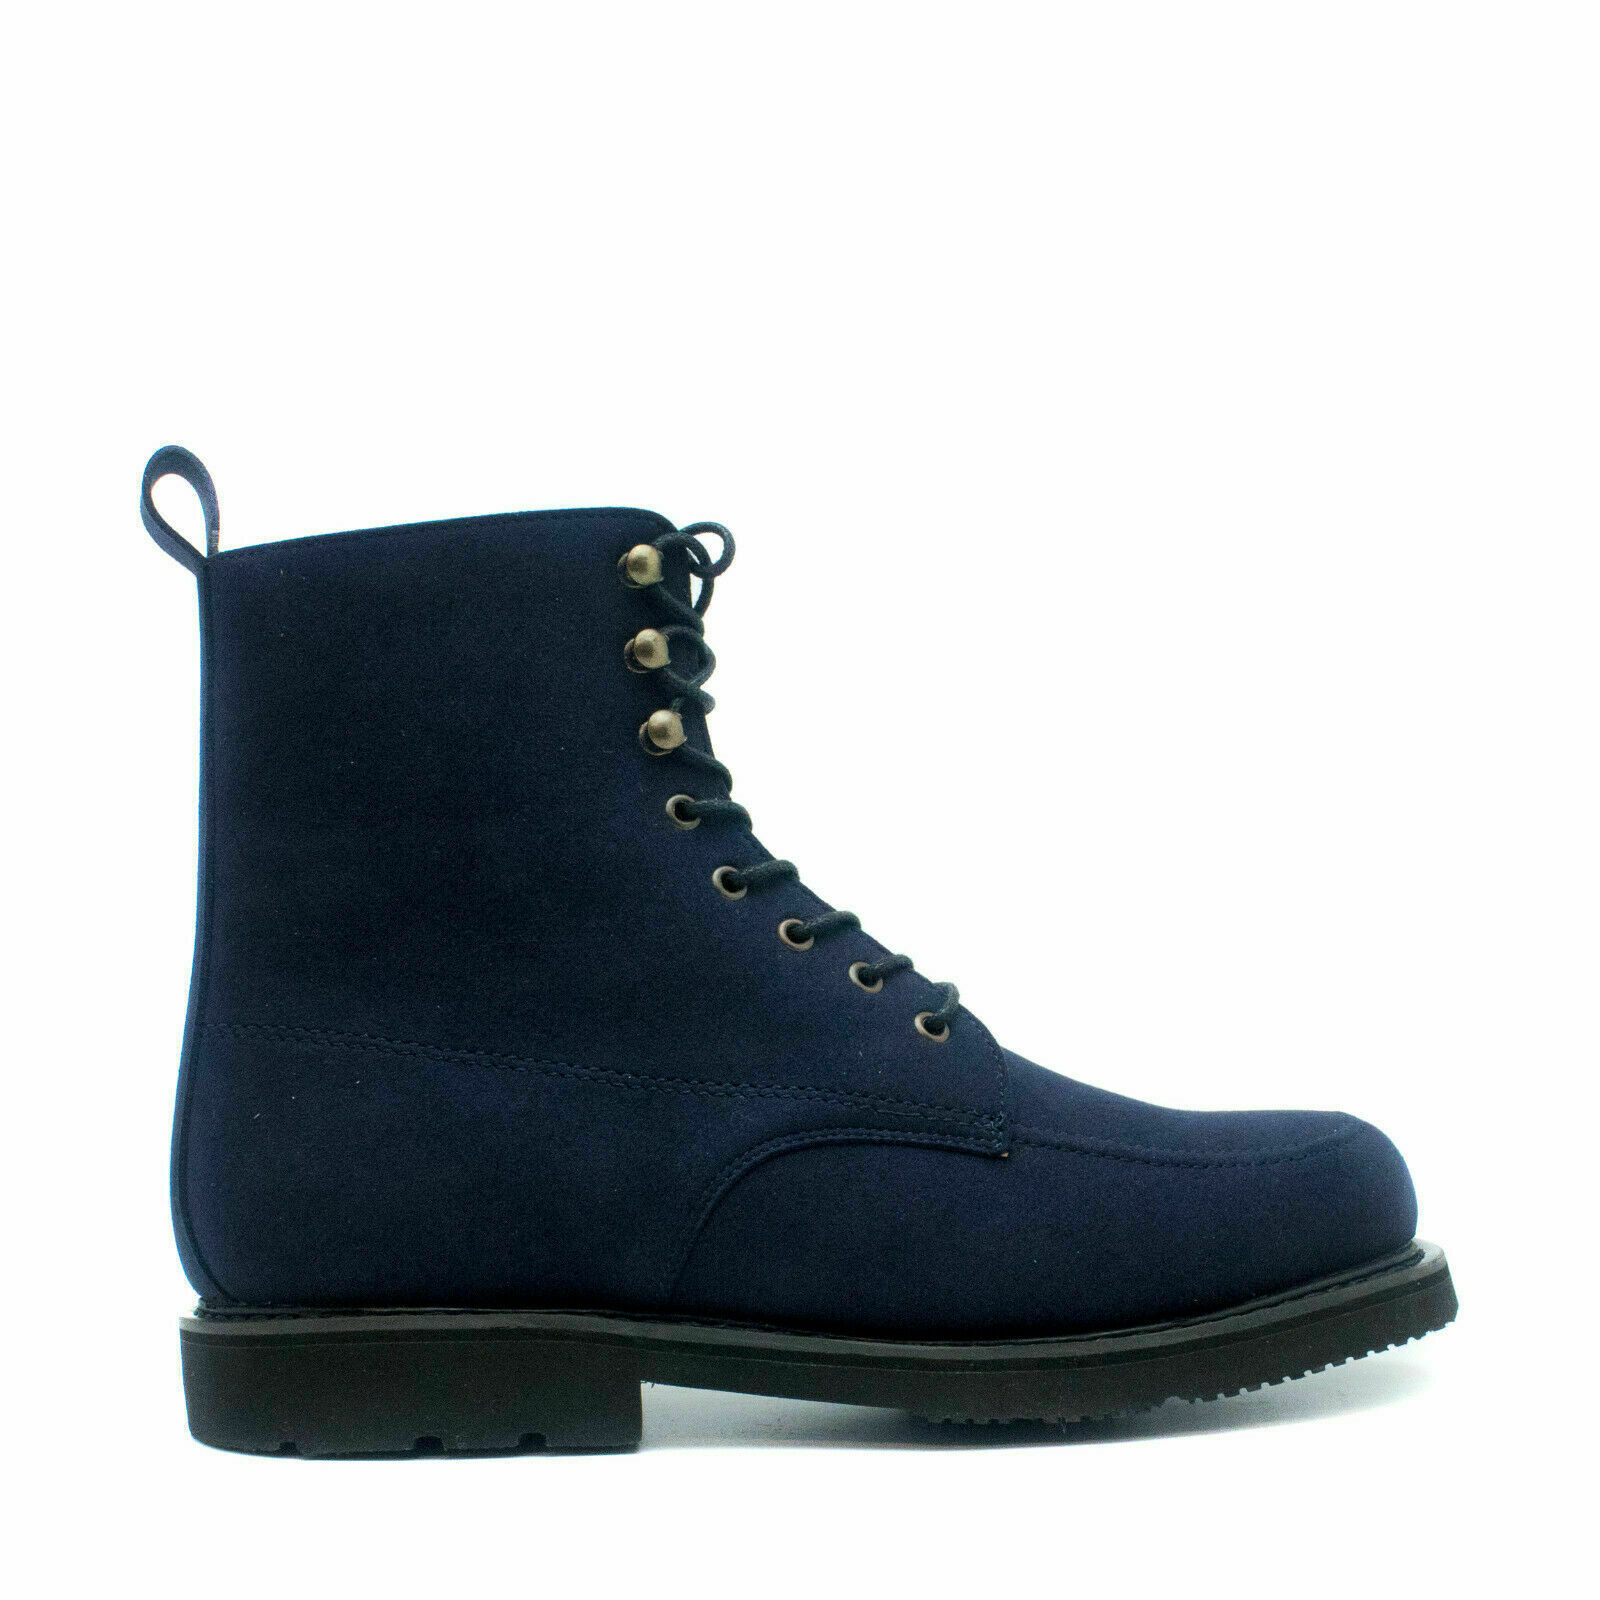 Mid-Calf boot toe in vegan leather suede-like with Goodyear sewn & breathable